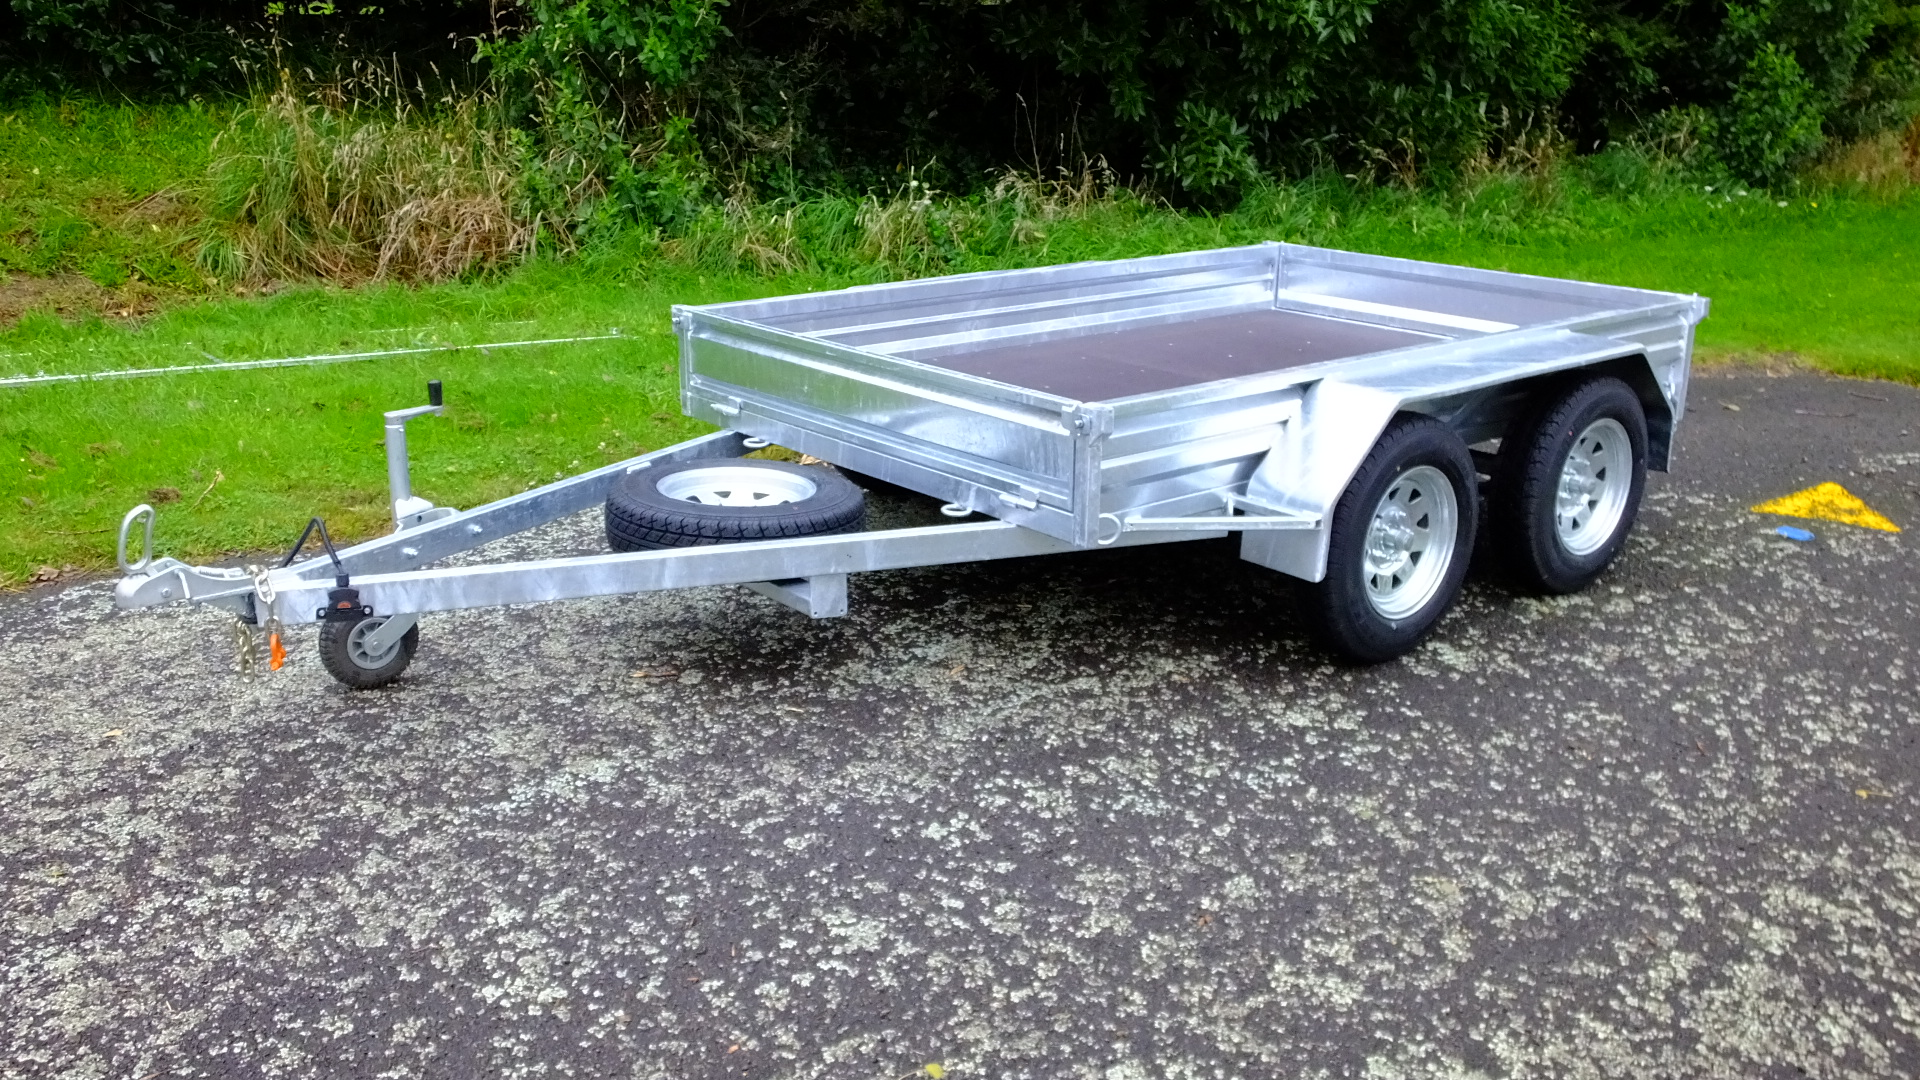 ORION 8x5 Tandem Axle Trailer